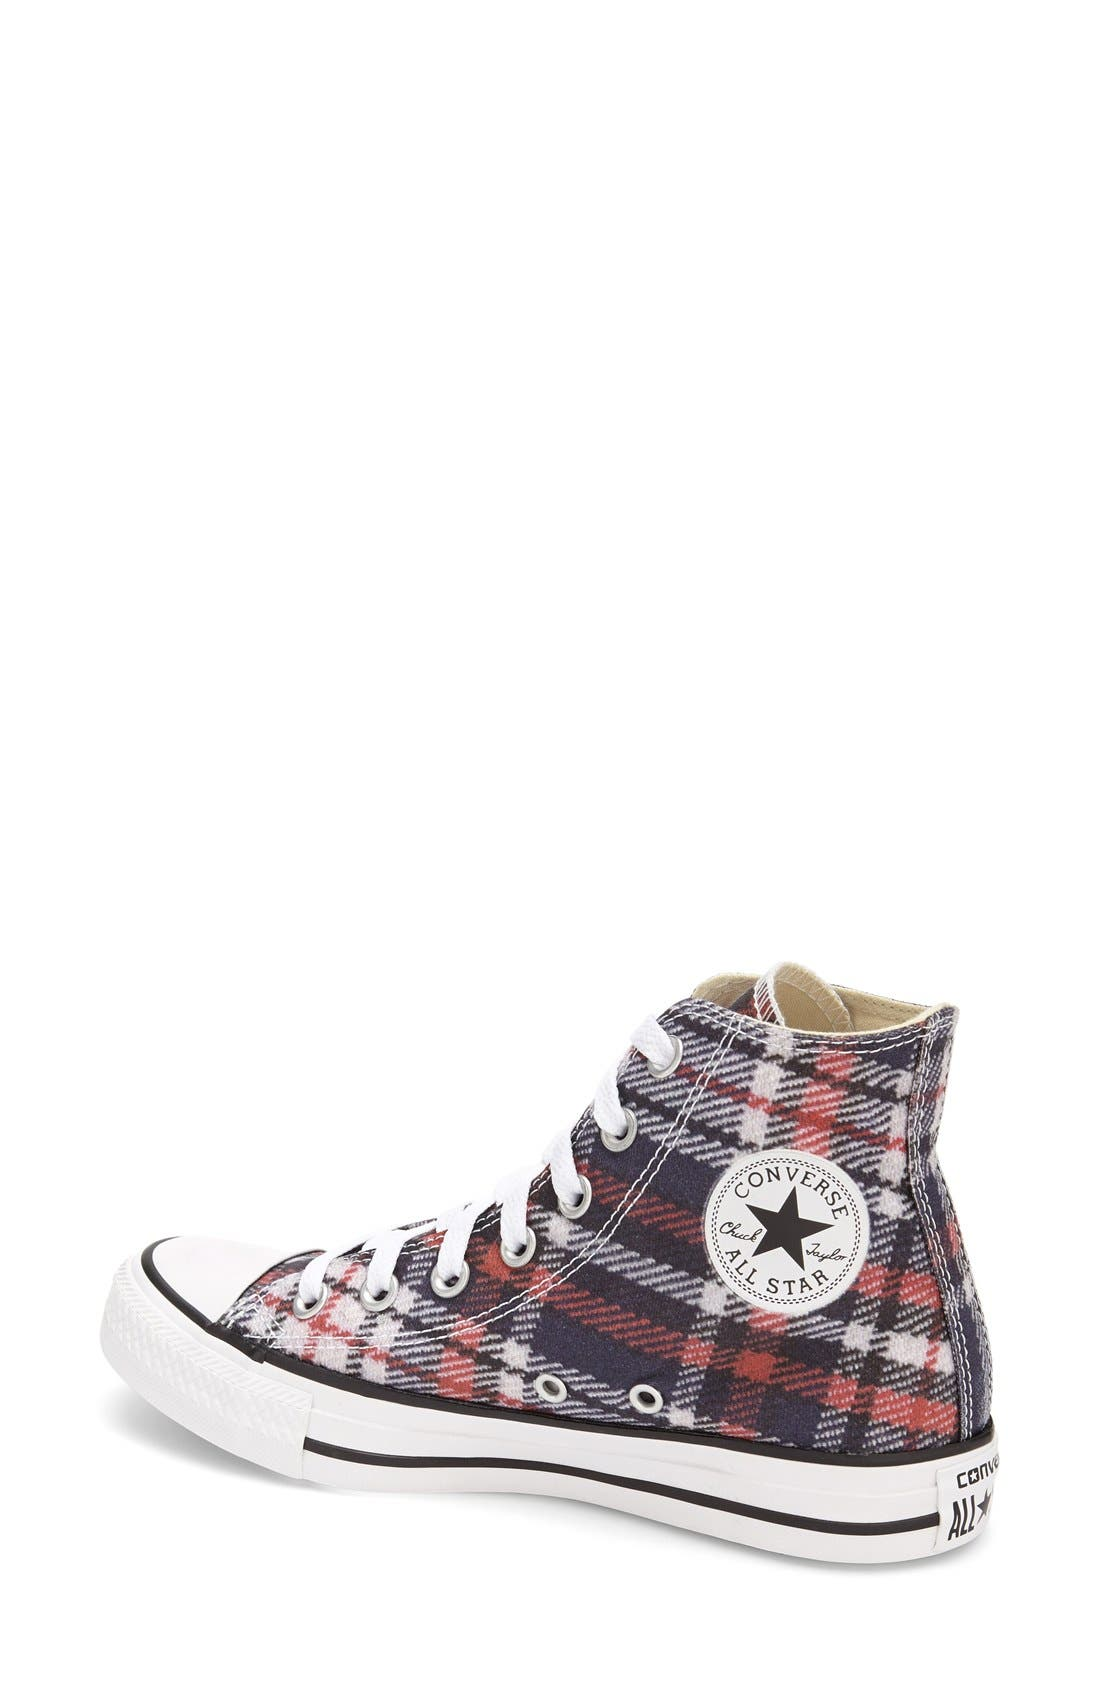 Alternate Image 2  - Converse Chuck Taylor® All Star® Plaid High Top Sneaker (Women)